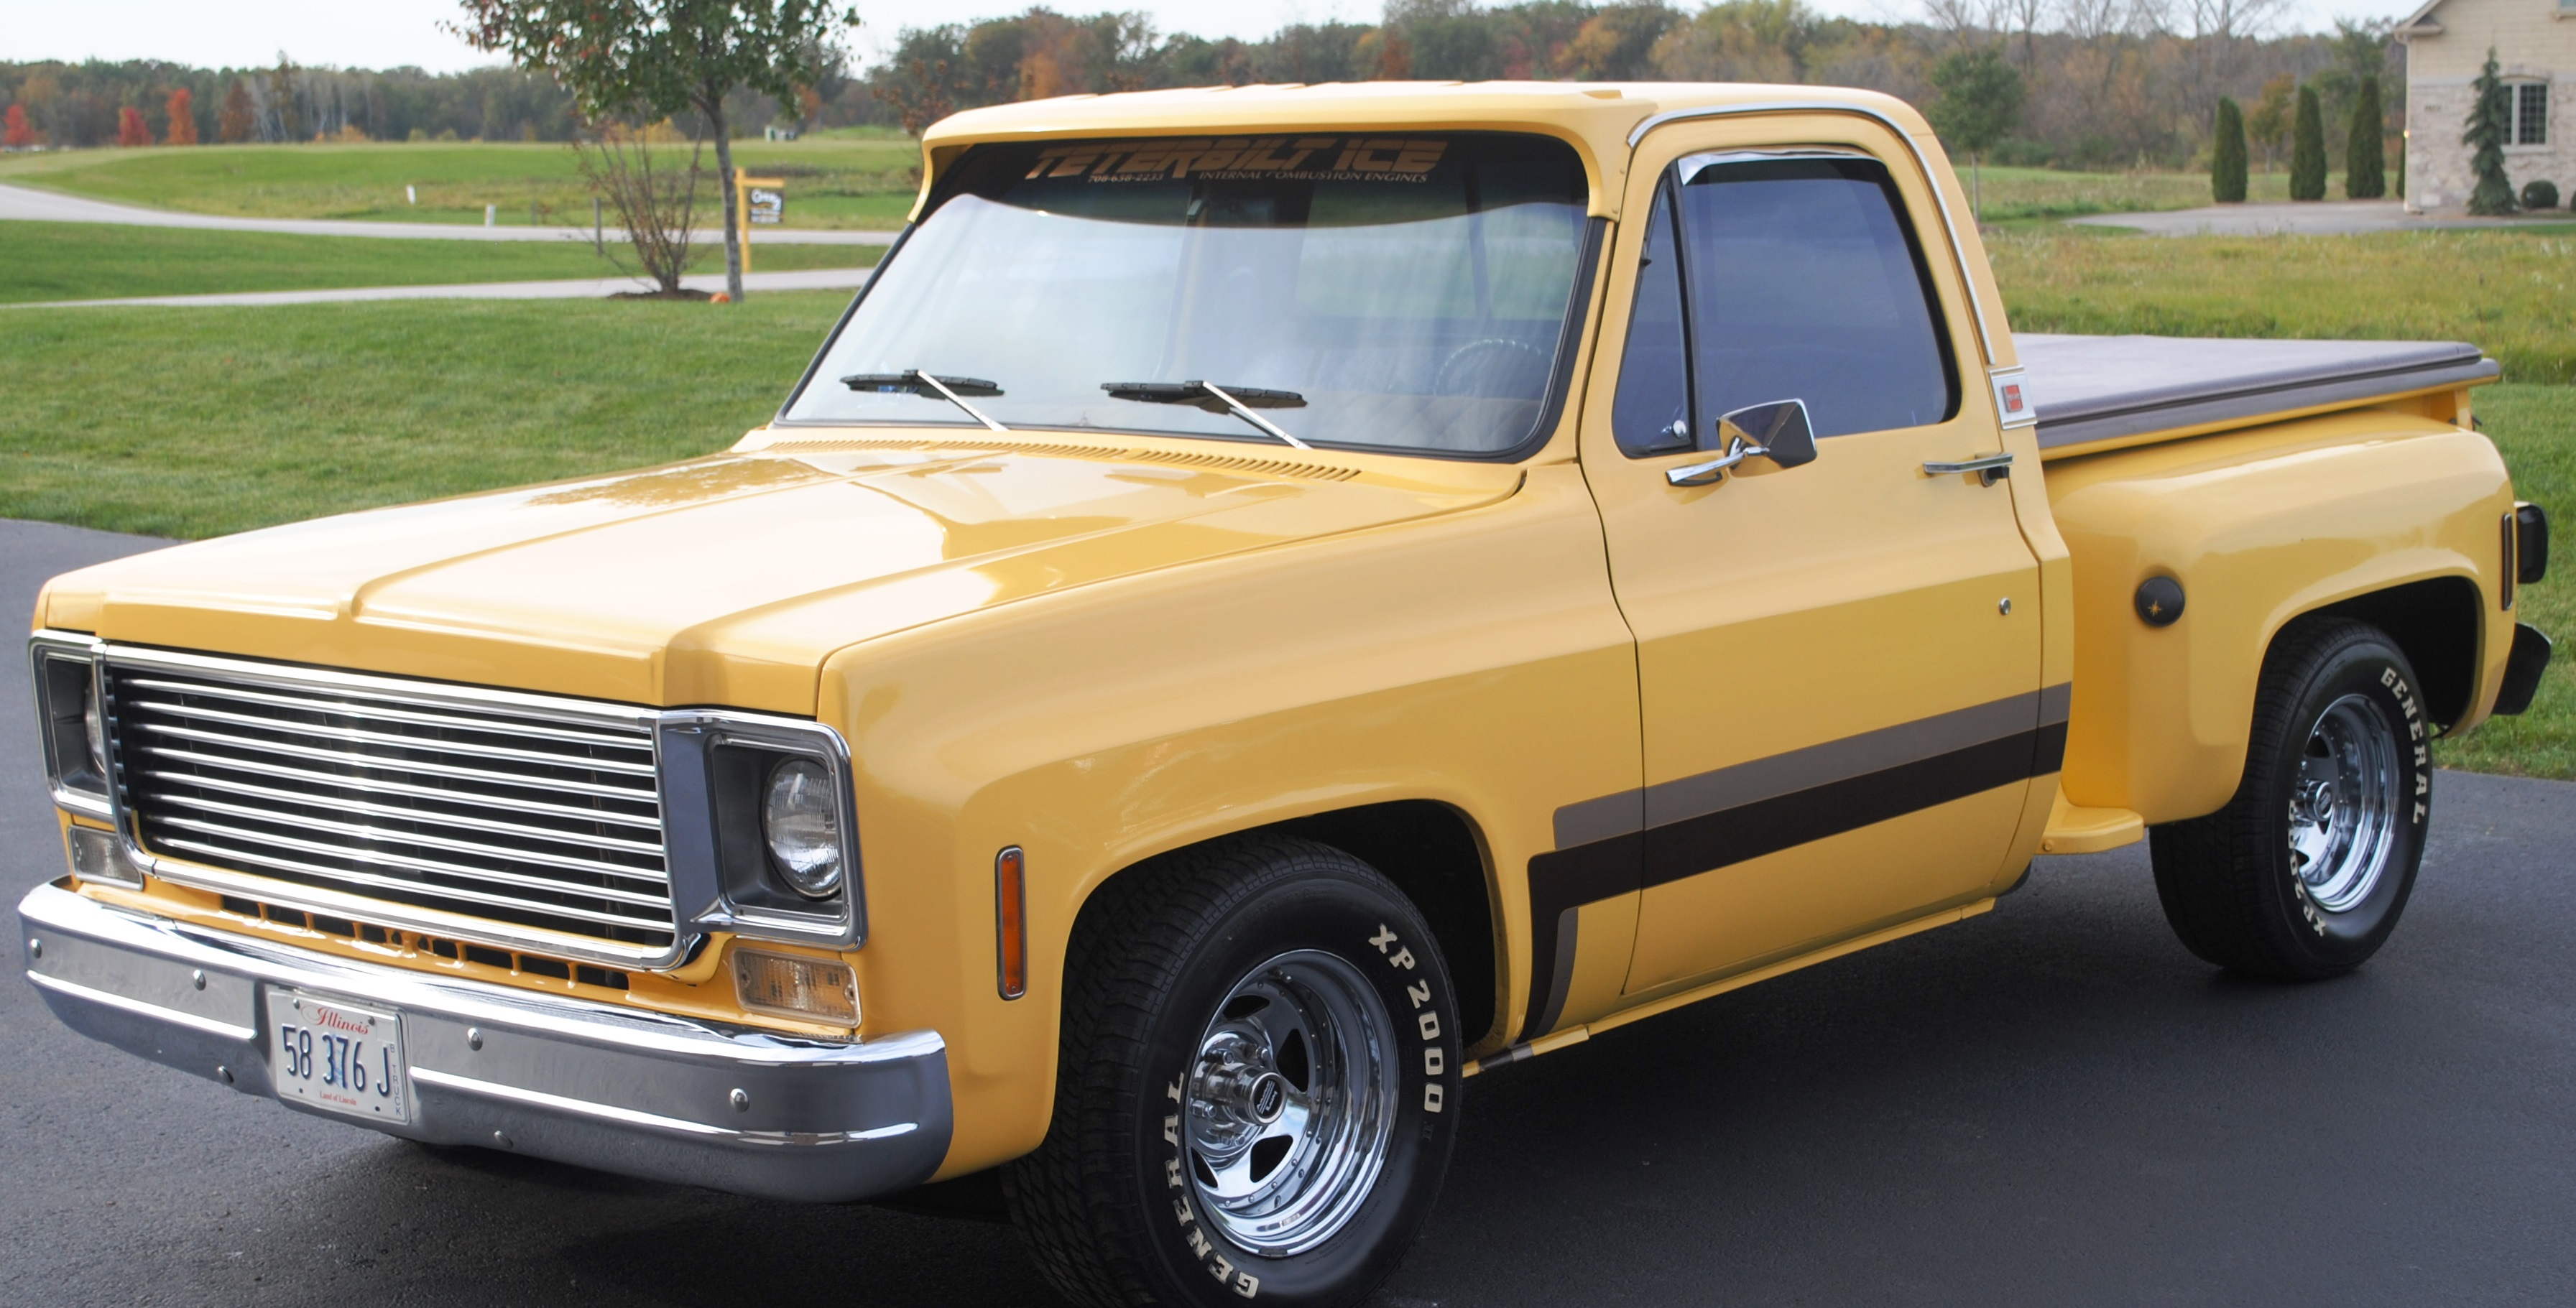 1977 GMC Sierra pick up truck – SOLD | OLDMOTORSGUY.COM